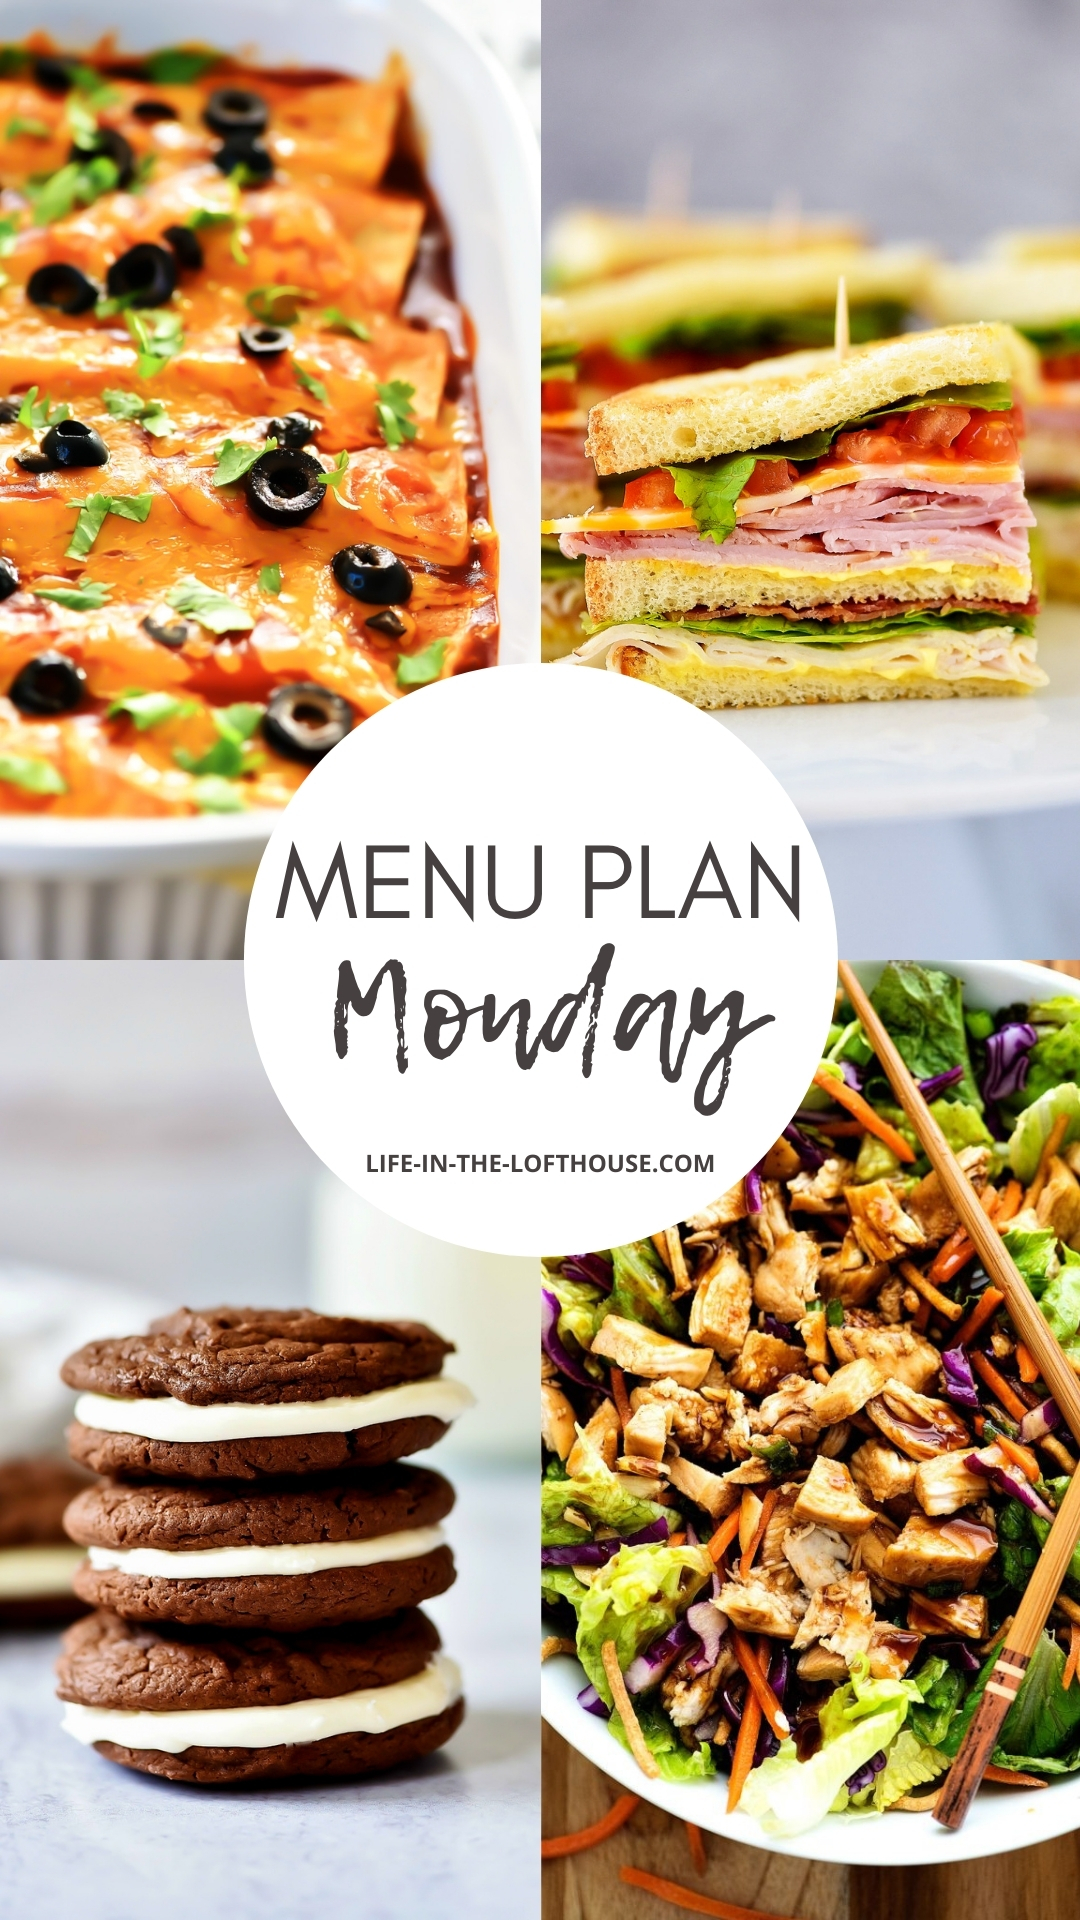 Menu Plan Monday is a weekly menu with delicious dinner recipes. All of the recipes are easy to follow and great for busy weeknights.